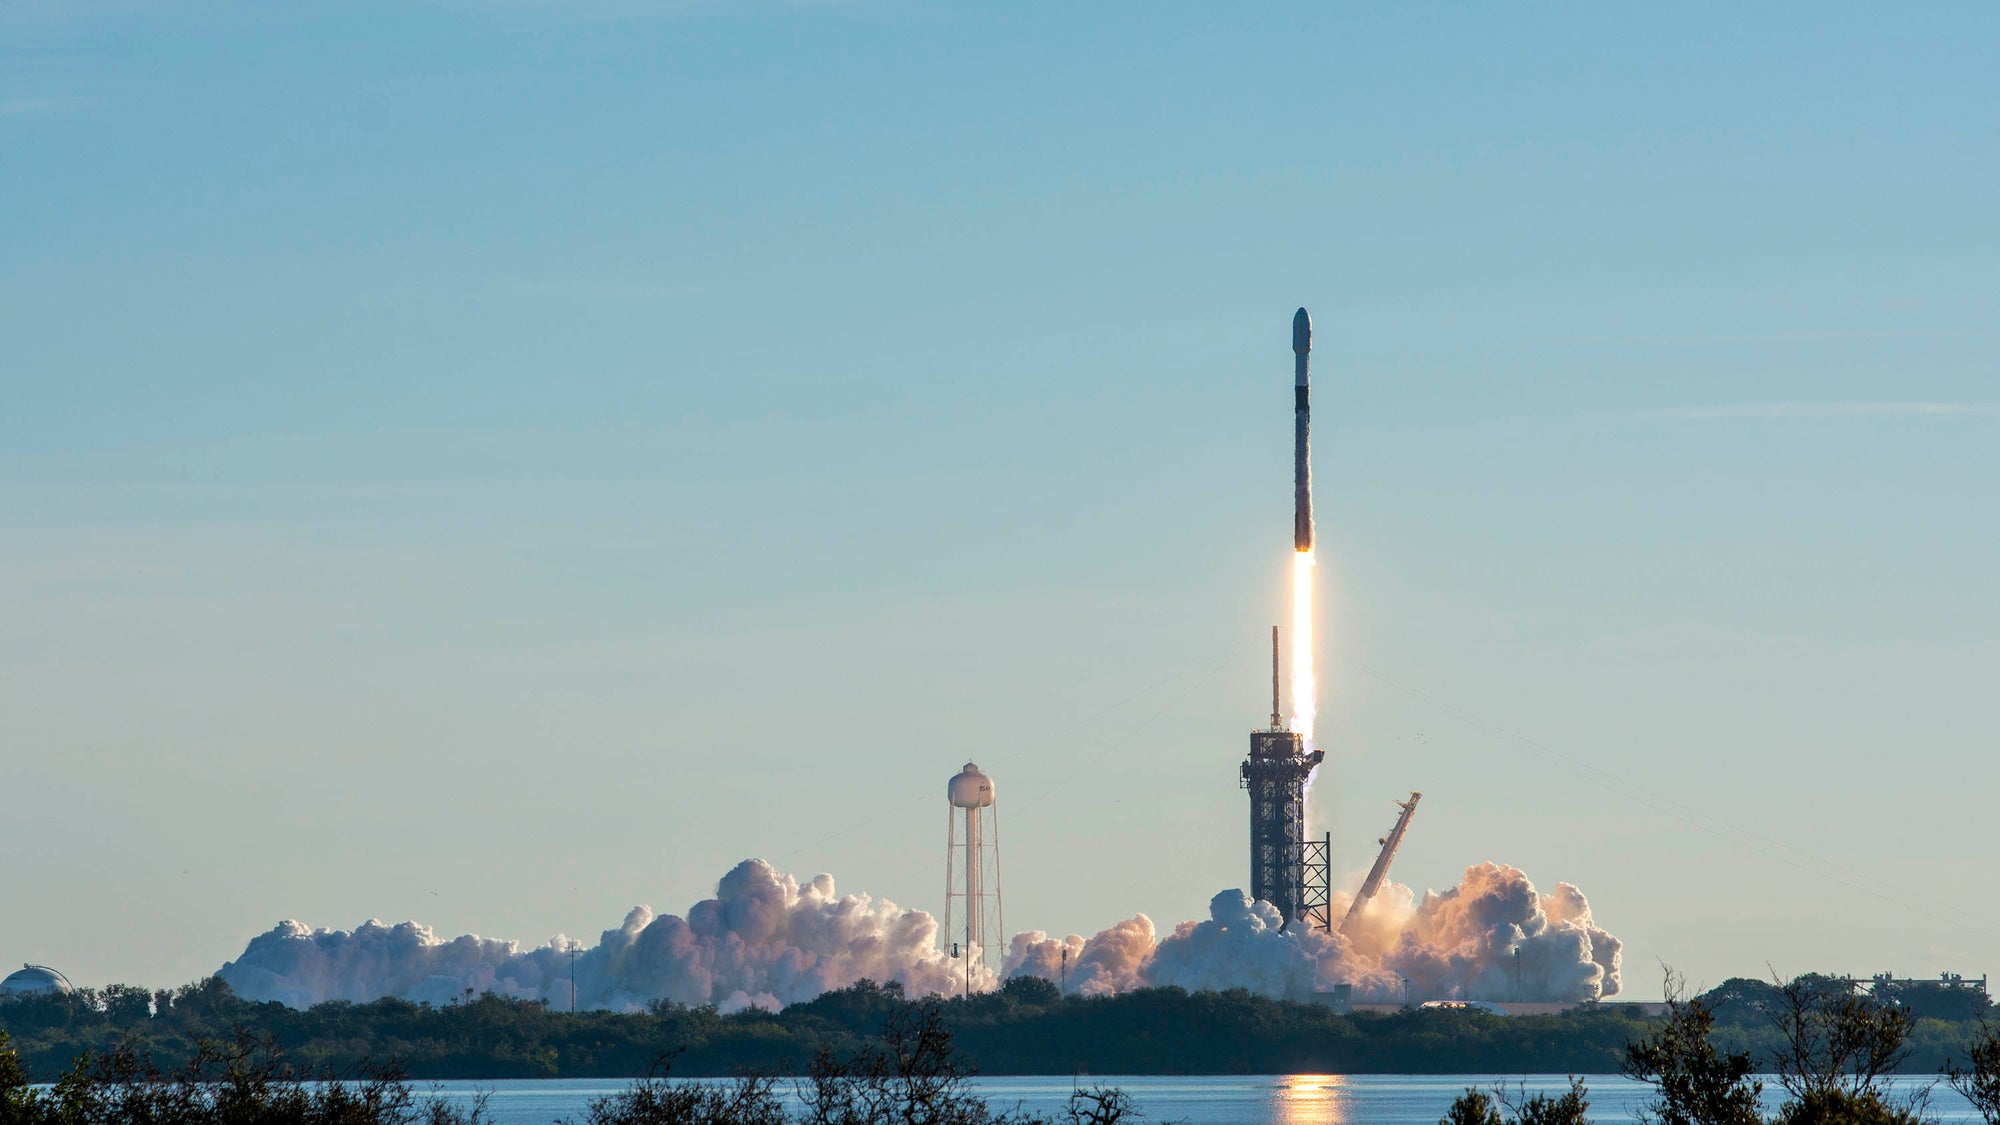 SpaceX Reaches Milestone Of Over 1,000 Starlink Satellites Deployed